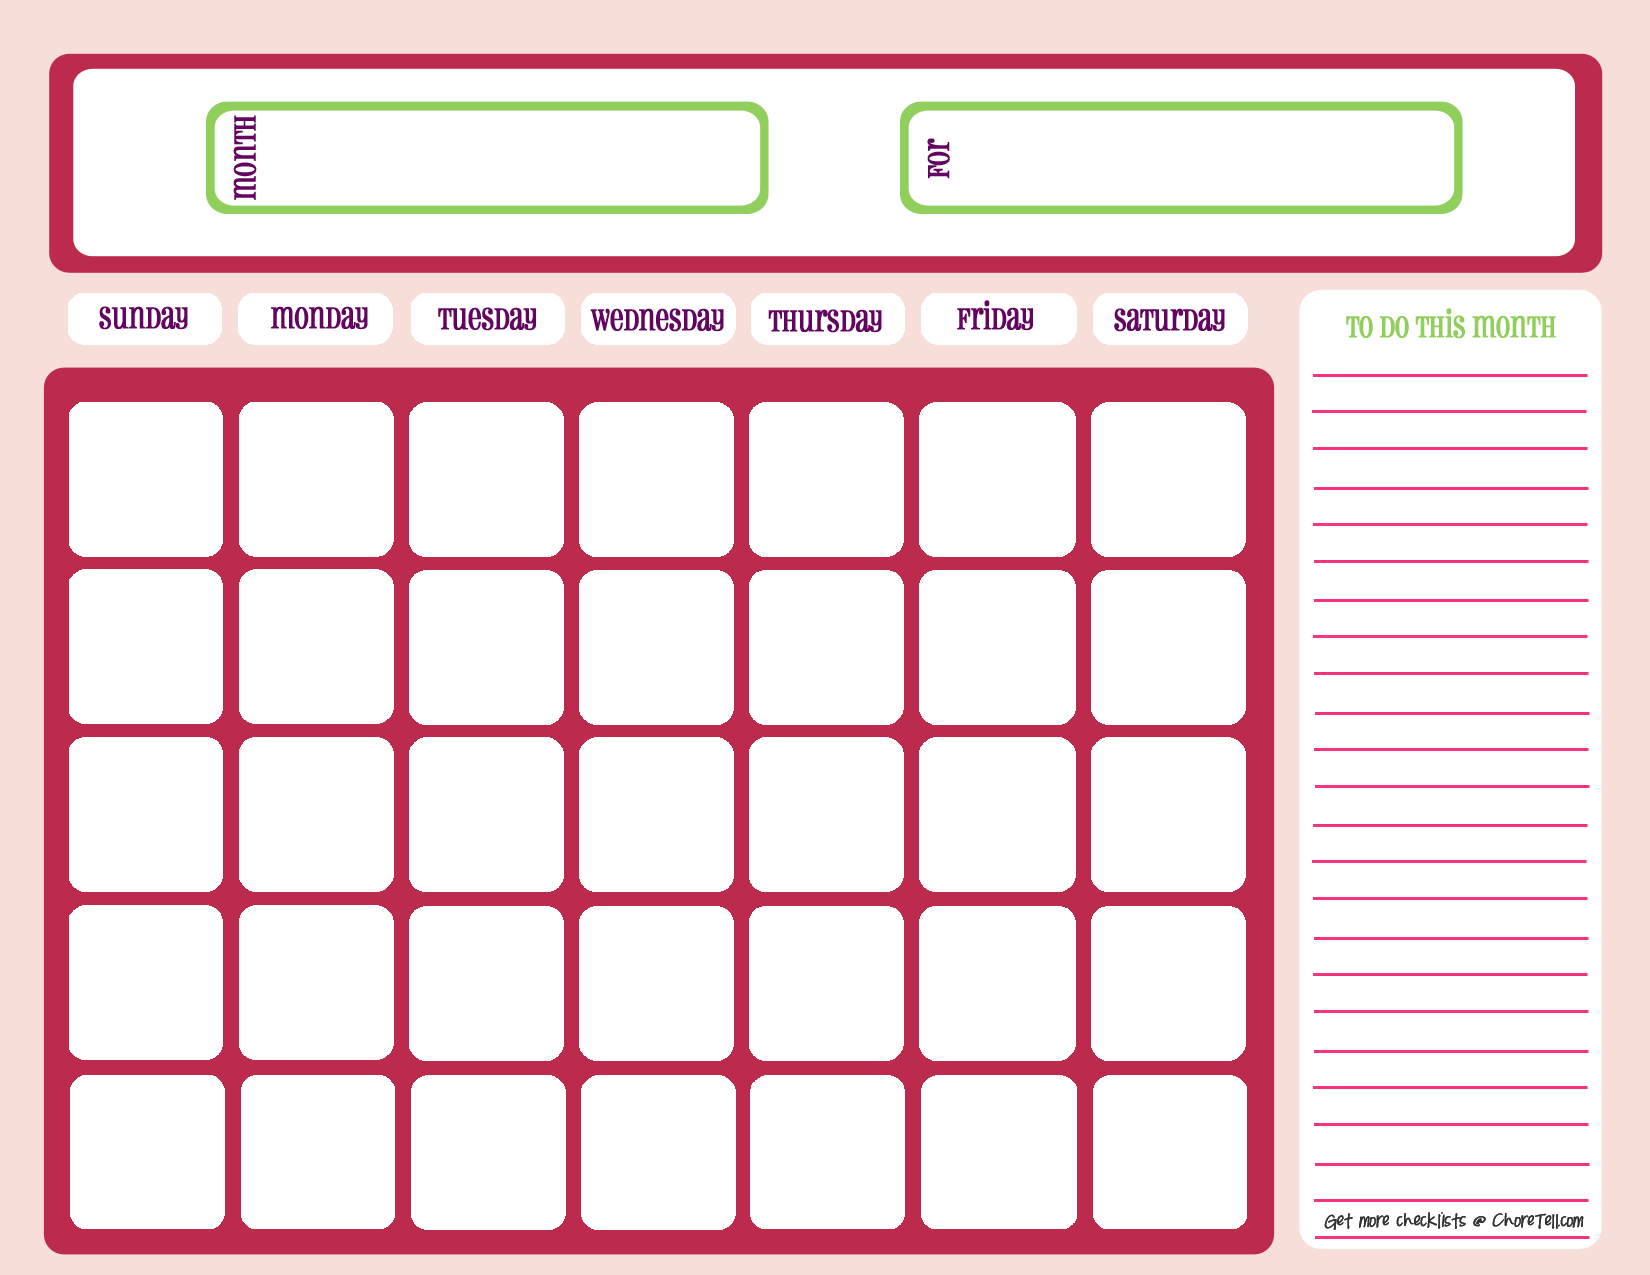 Blank Month Calendar - Pinks - Free Printable Downloads From